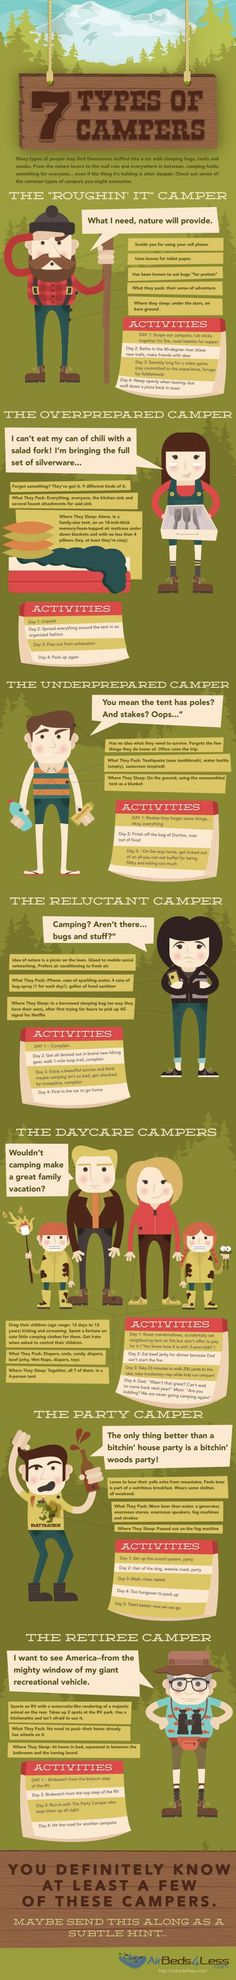 Seven different ways and types of campers